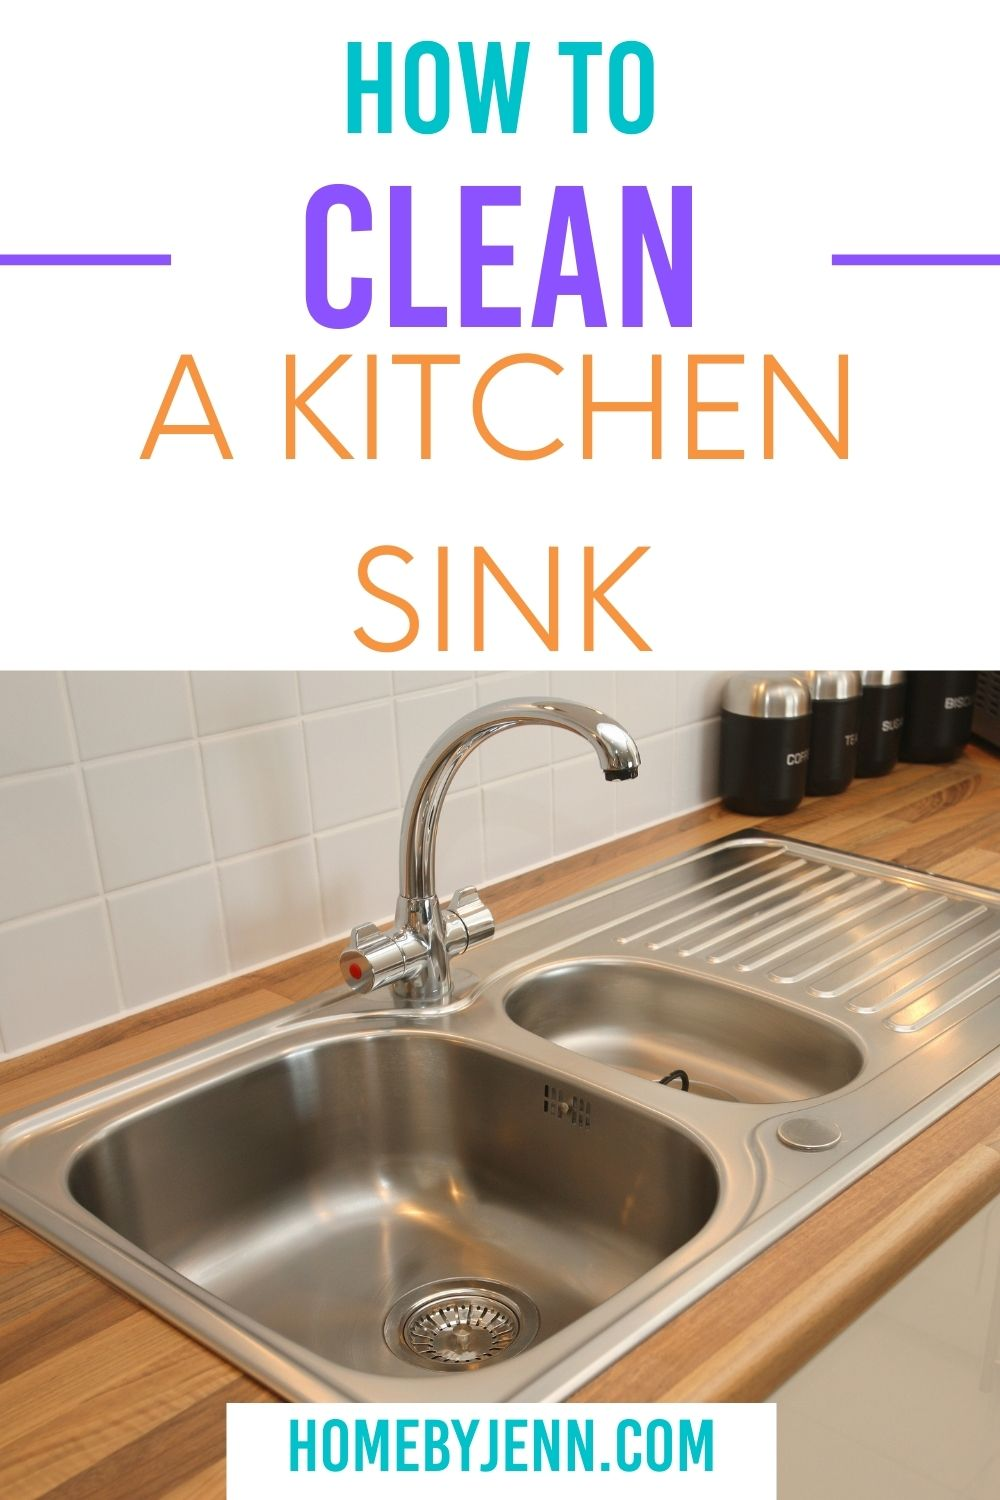 Cleaning a sink seems simple enough, right? If you've got a stained kitchen sink then you'll love this post. Learn how to clean a kitchen sink. These steps will be the same for cleaning any sink and removing stains from sinks. via @homebyjenn